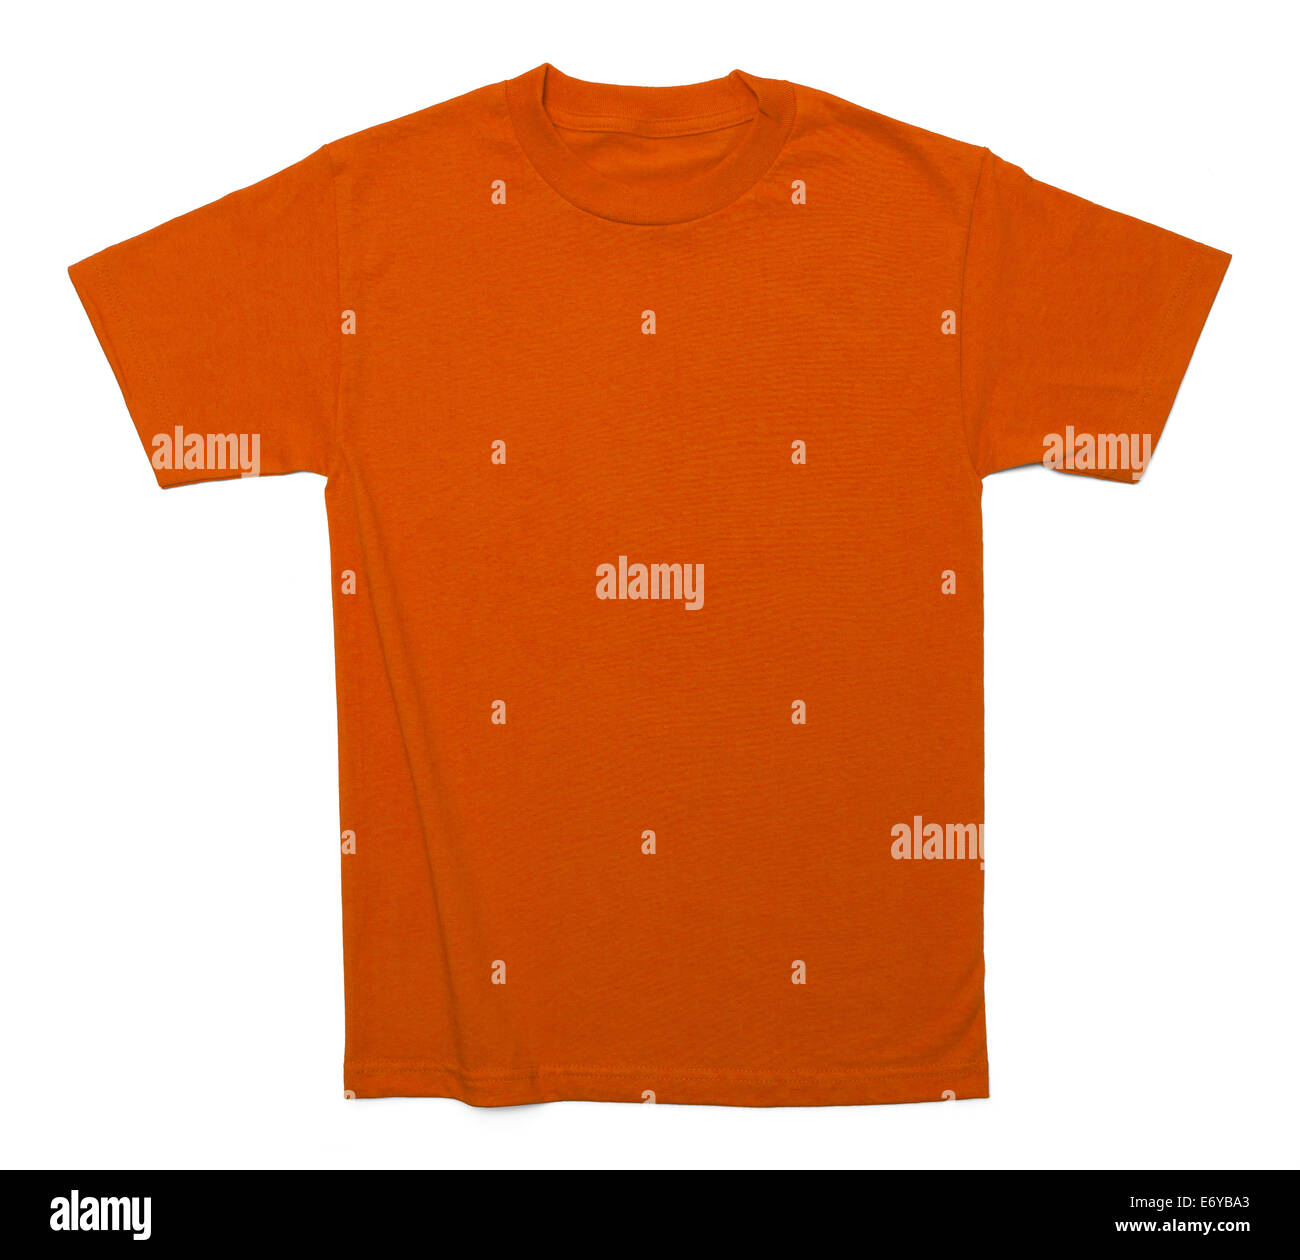 Orange Cotton Shirt with Copy Space Isolated on White Background. - Stock Image